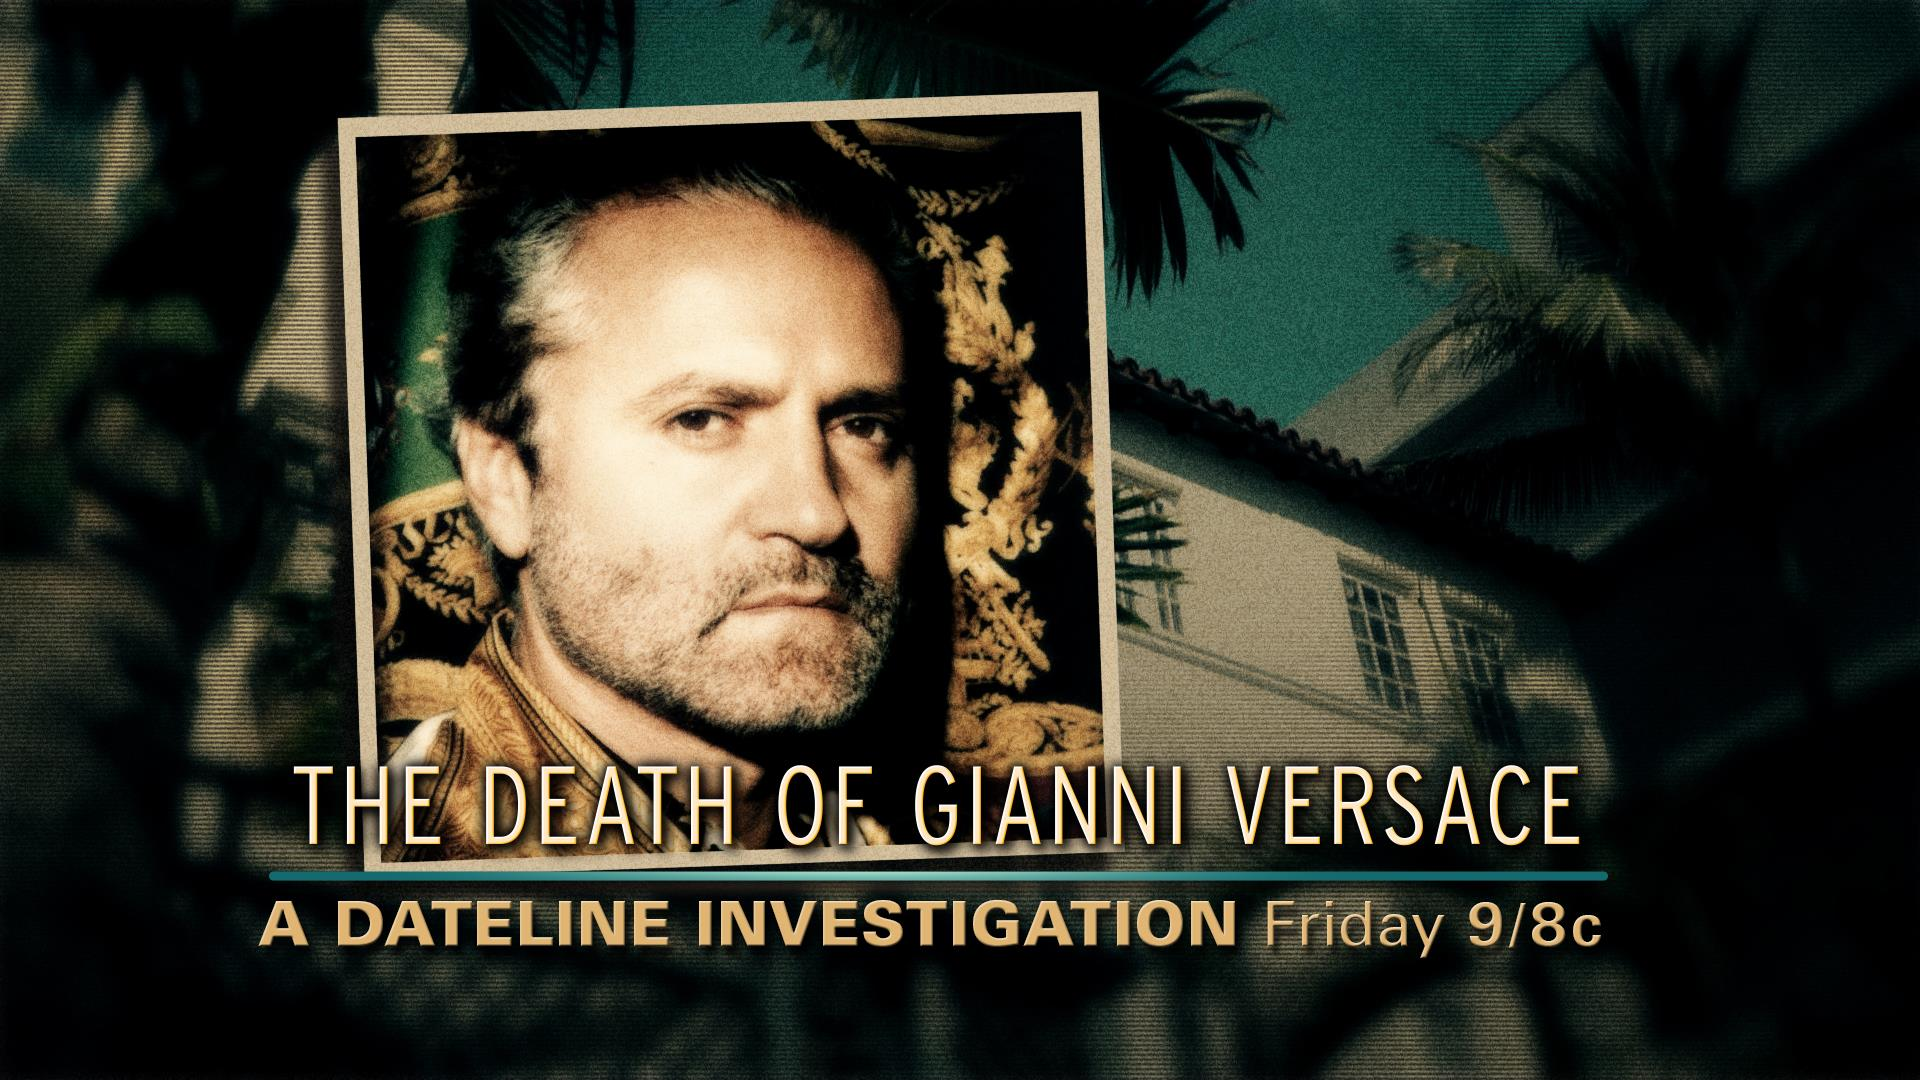 20 Years Later, Dateline's Keith Morrison Reflects on Covering Gianni Versace's Murder